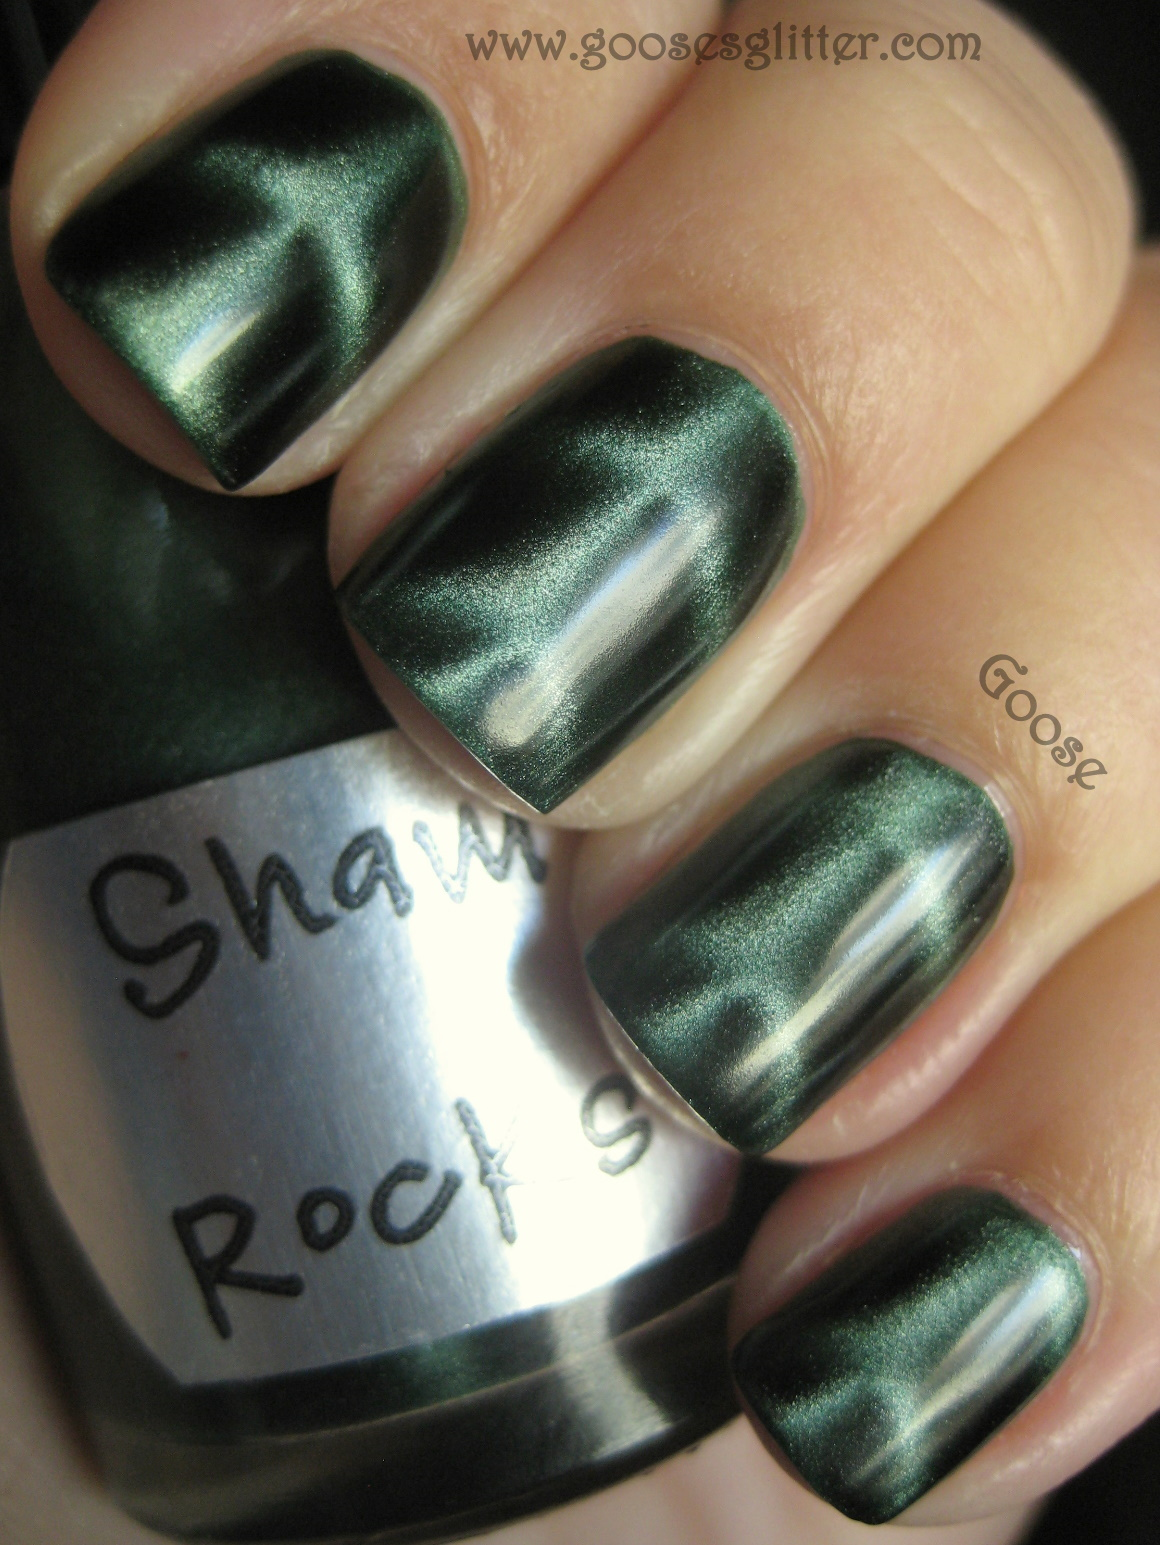 Goose\'s Glitter: You Mix Cosmetics Magnetic Polishes